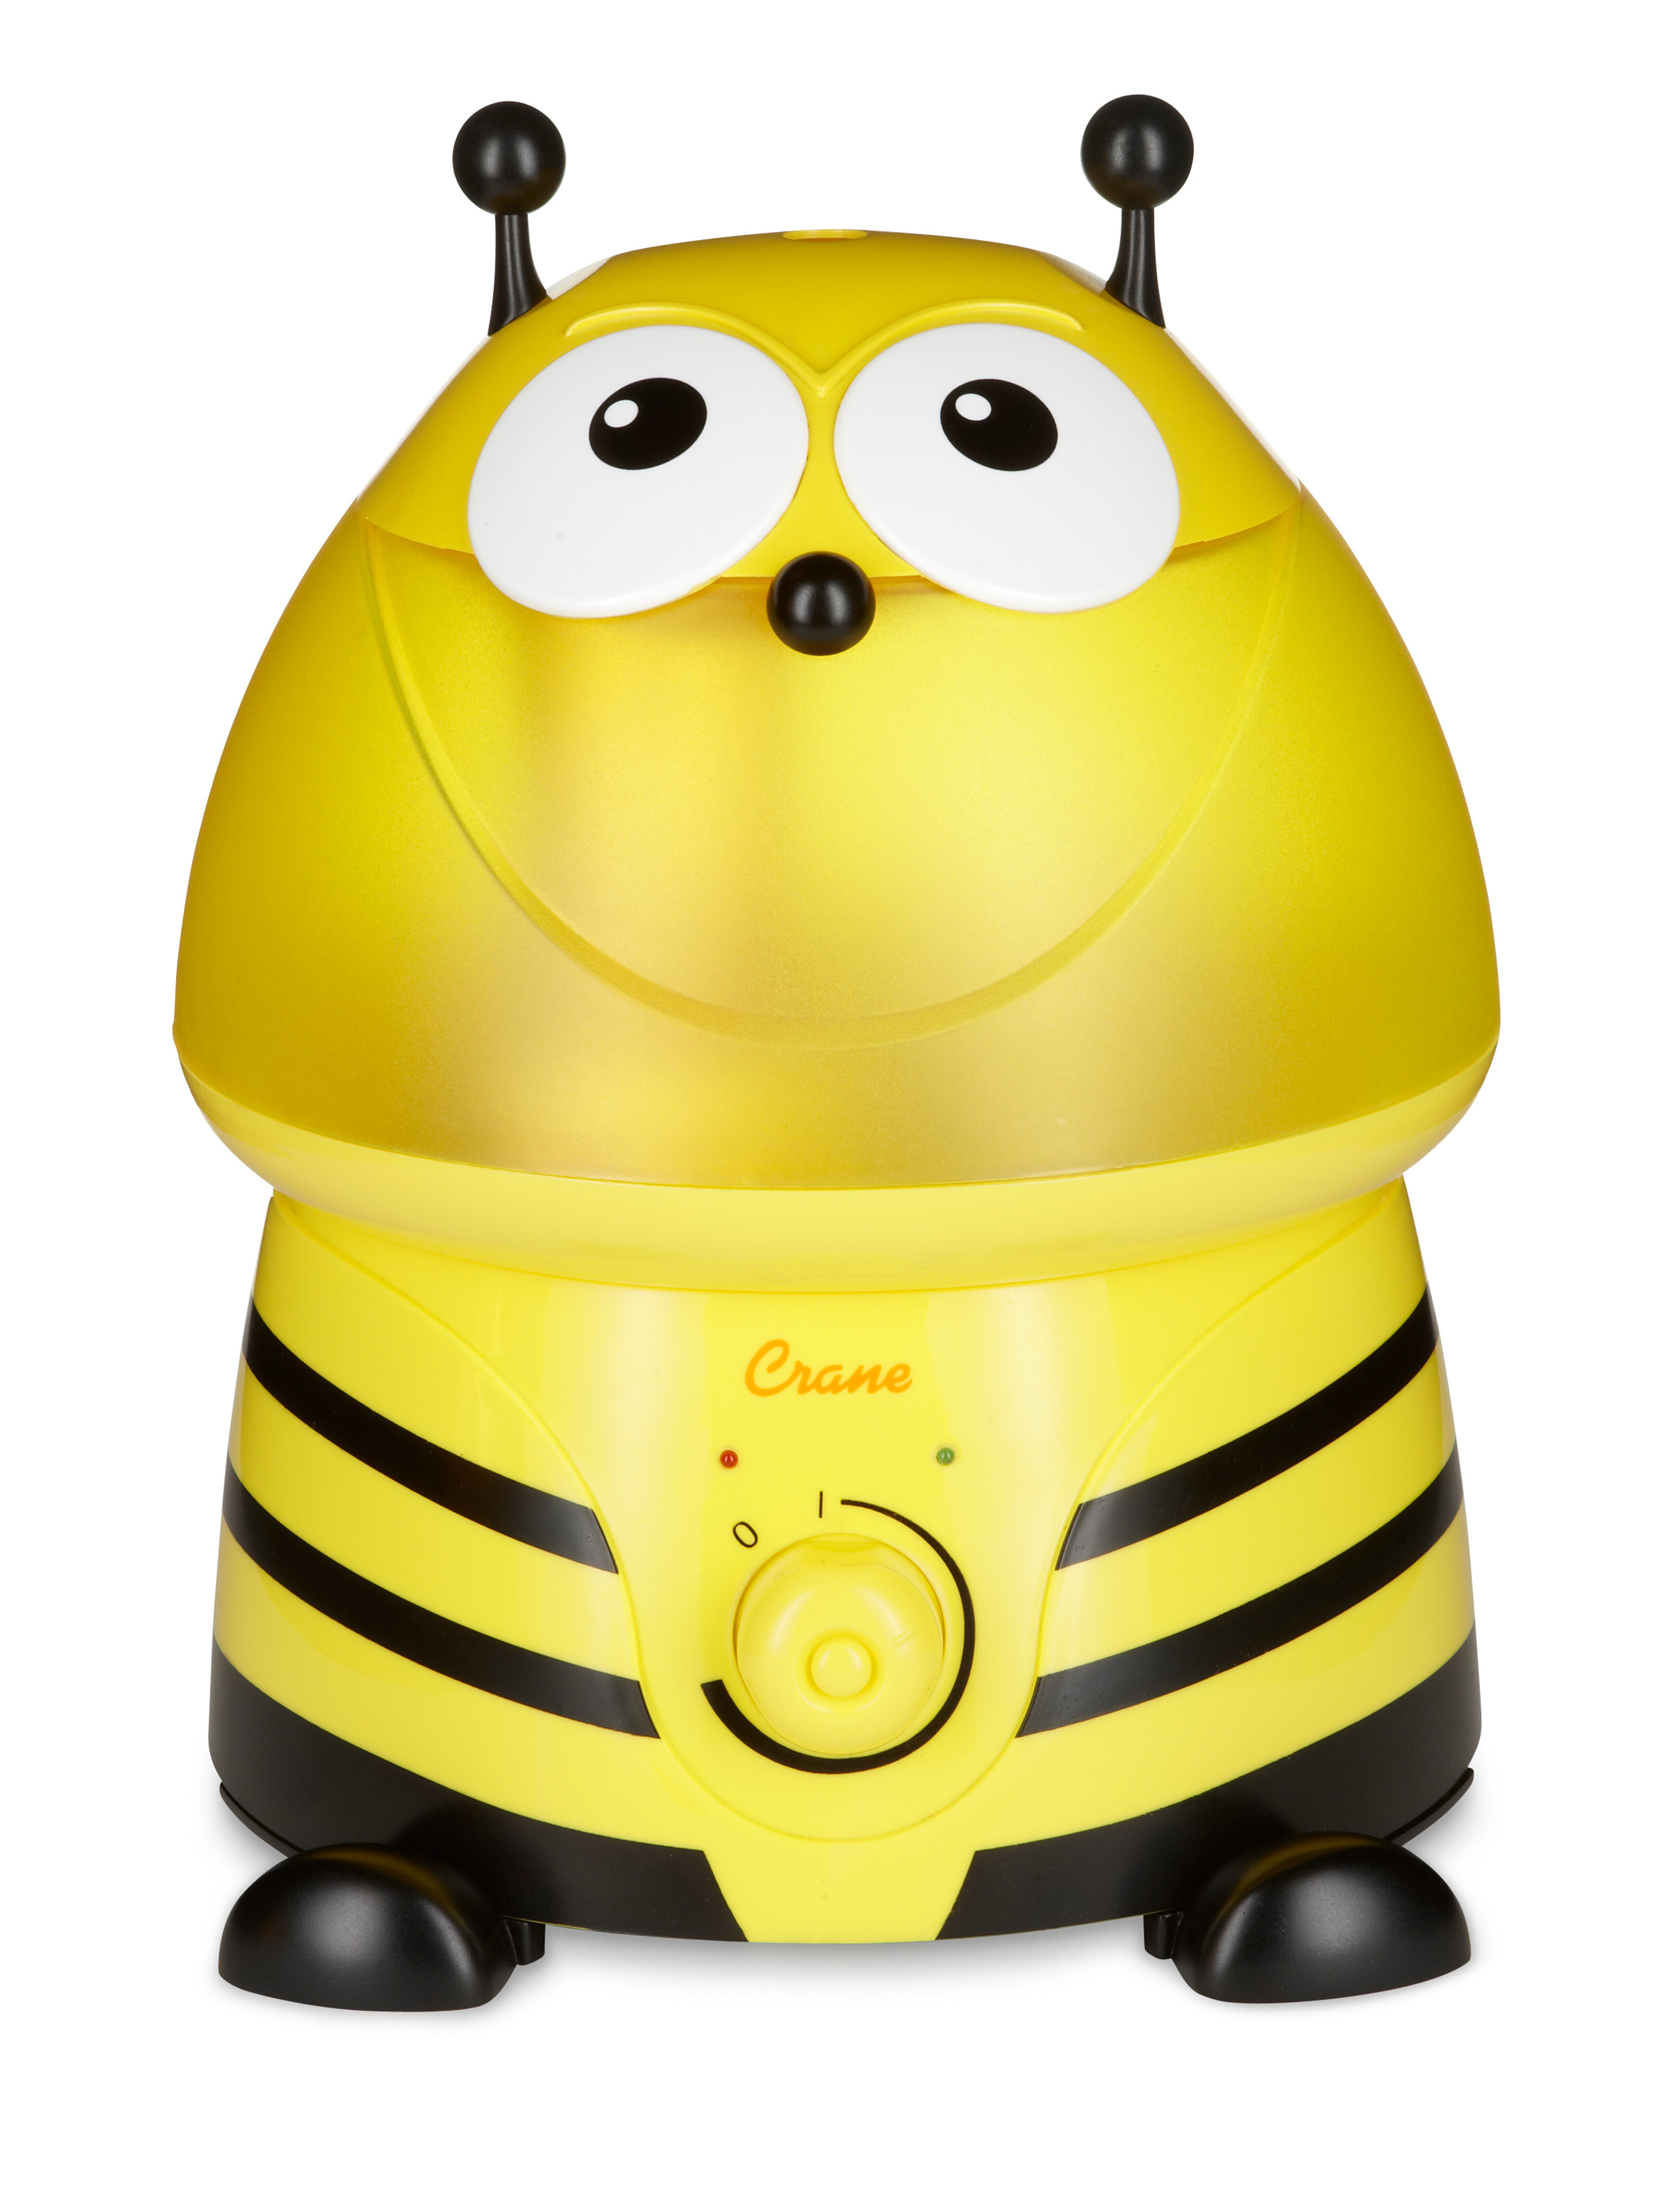 Mothercare | Crane Bumble Bee Cool Mist Humidifier Yellow